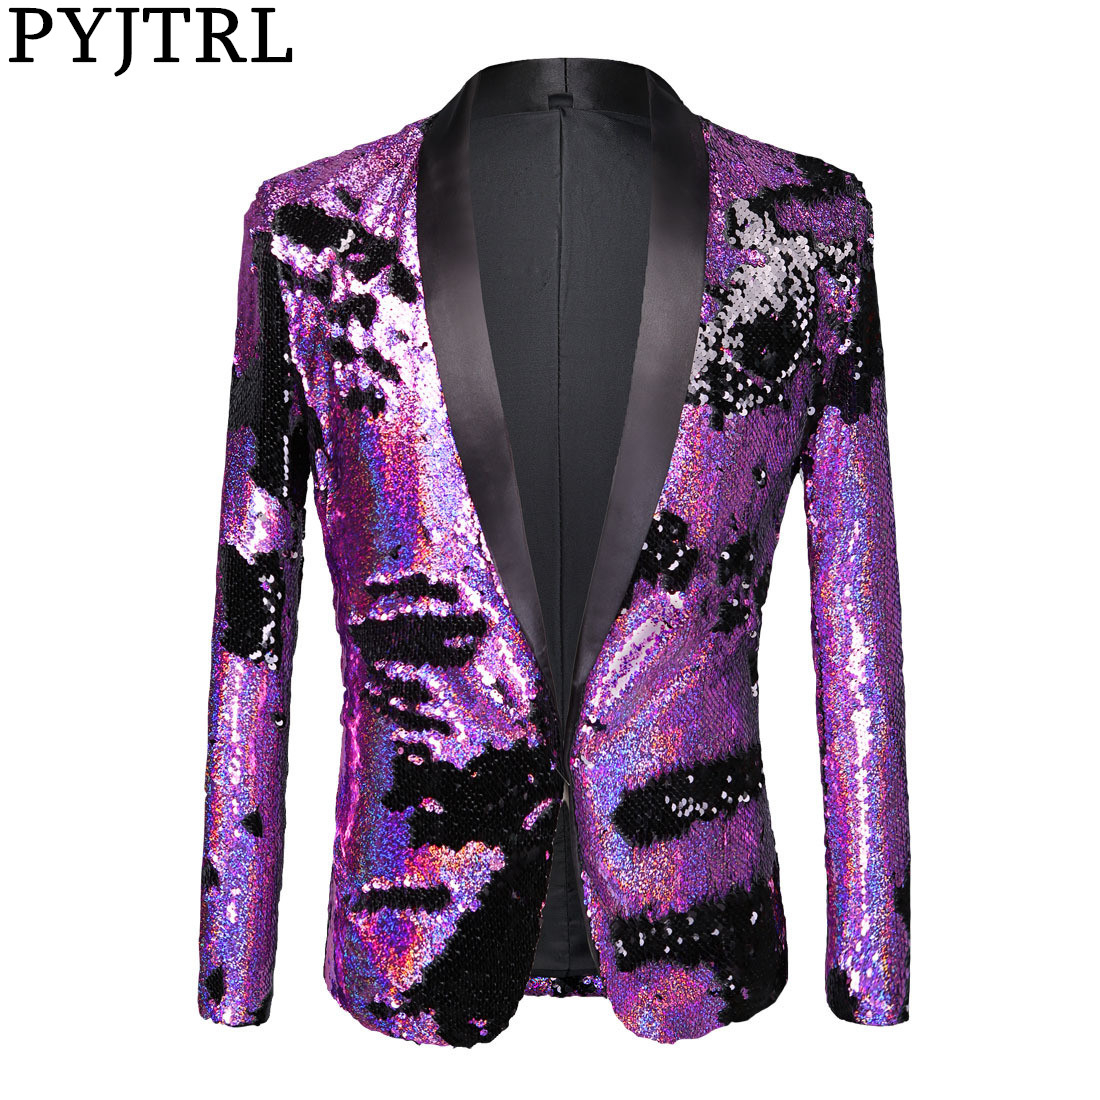 PYJTRL Full Sequins Series Men Double-Color Purple Black Sequins Blazer Fashion Nightclub Bar DJ Singers Suit Jacket Costumes